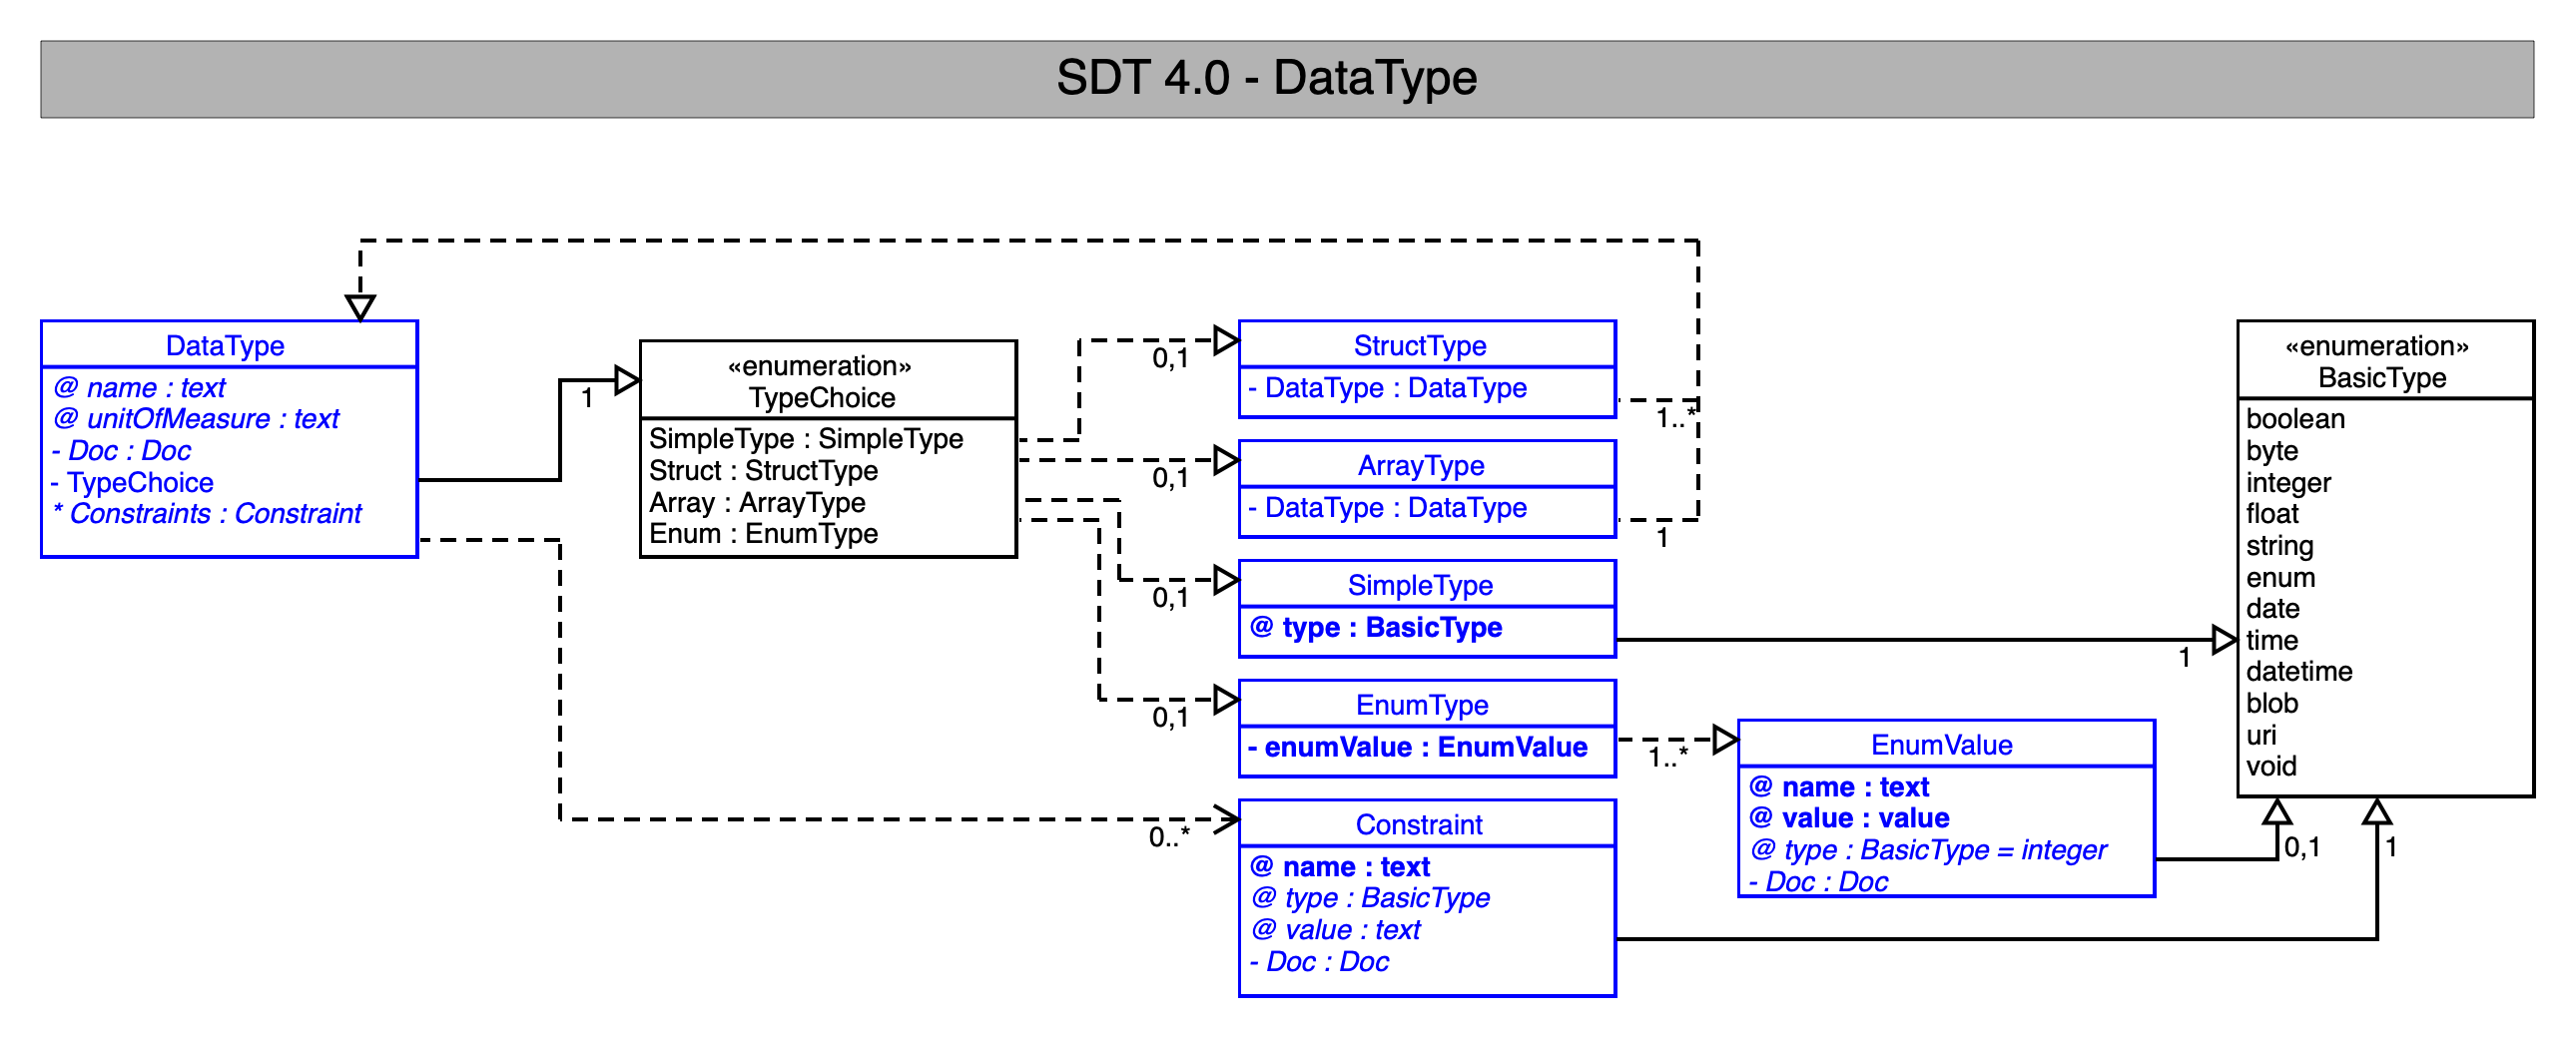 SDT/schema4.0/docs/images/SDT_UML_DataType.png